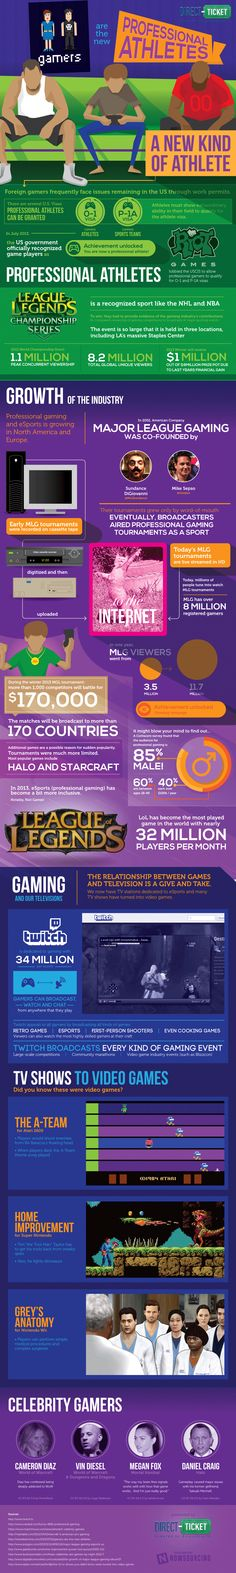 Introducing the Newest Athlete: Professional Gamers [Infographic] - http://goo.gl/IW0tuc